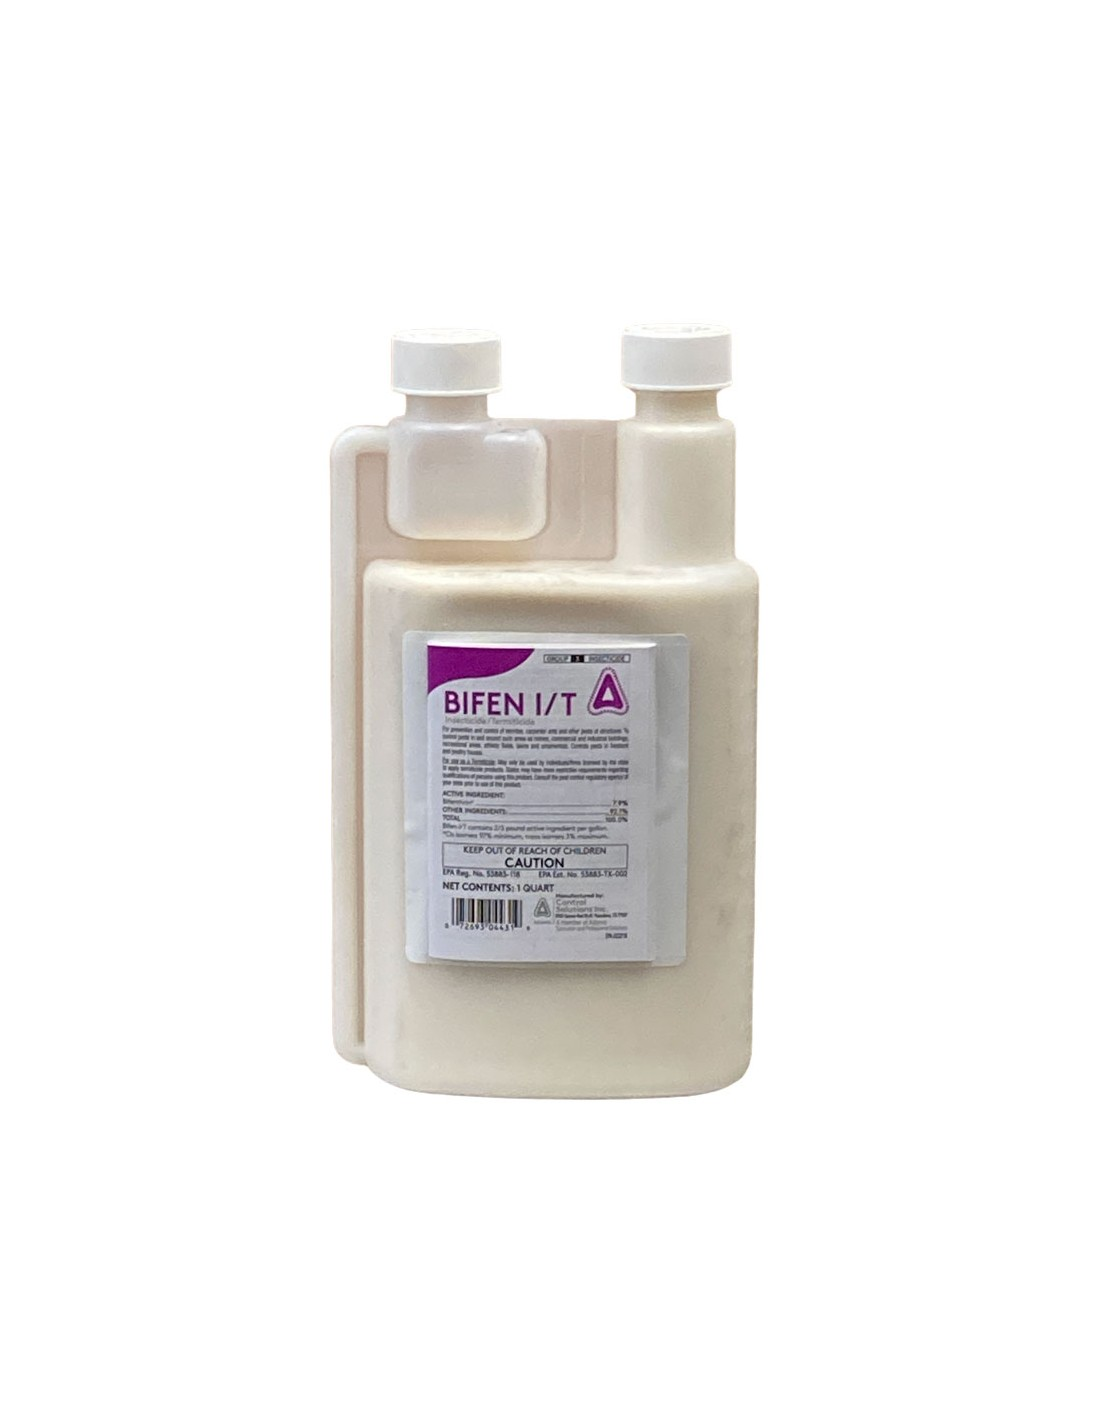 How does Bifen I/T compare to Suspenc SC or Tempo SC?